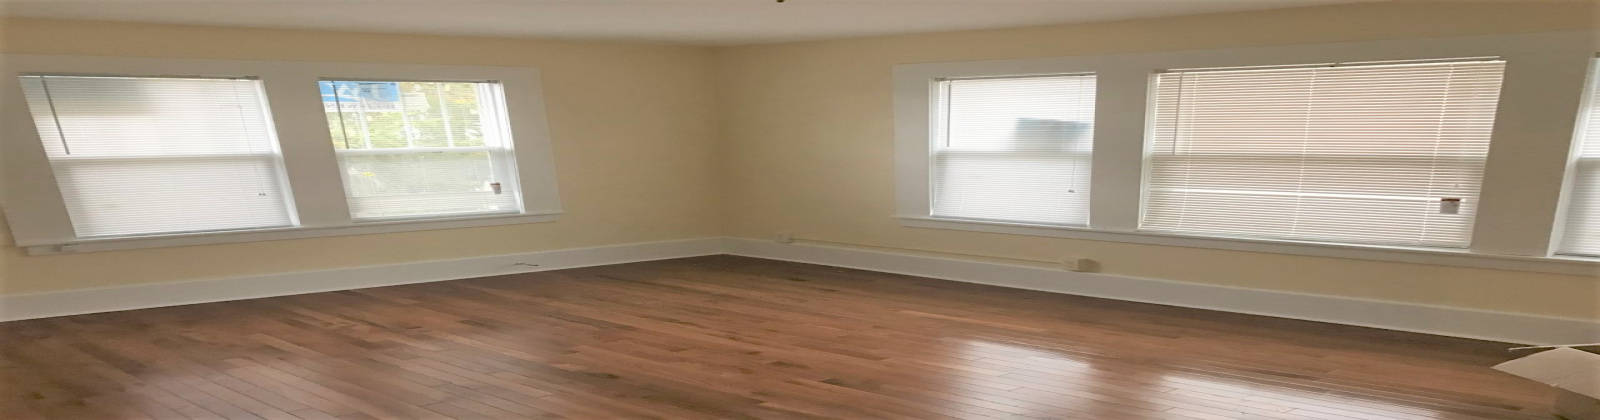 249 E State Street Athens, Ohio, 3 Bedrooms Bedrooms, ,1 BathroomBathrooms,Apartment,For Rent,E State,1022